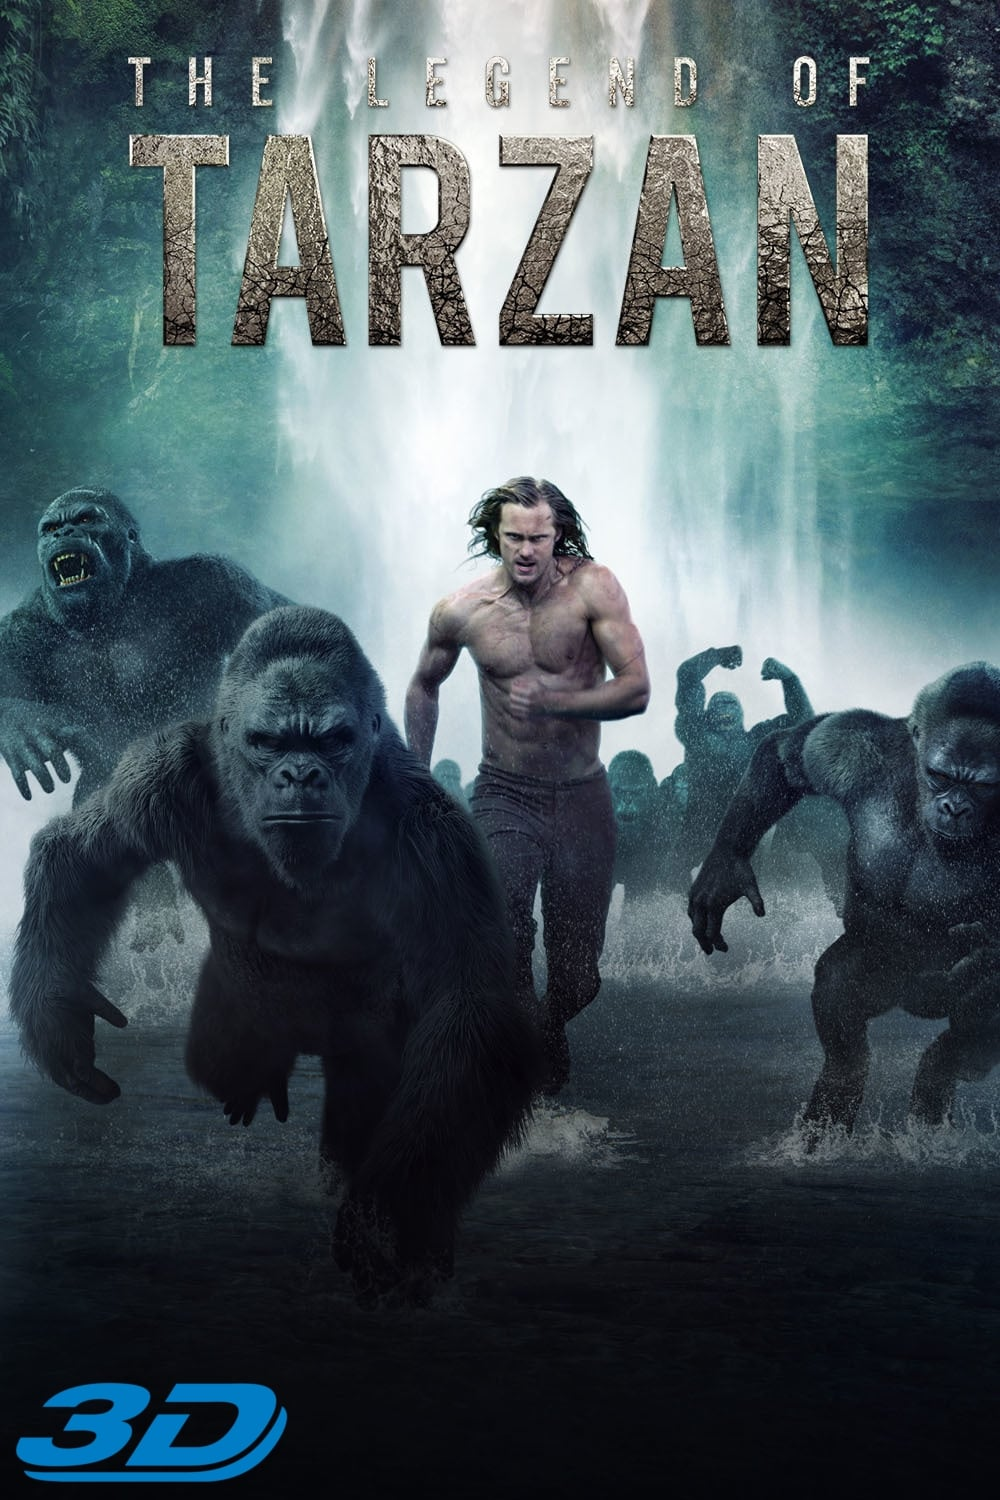 The Legend of Tarzan YIFY subtitles - details